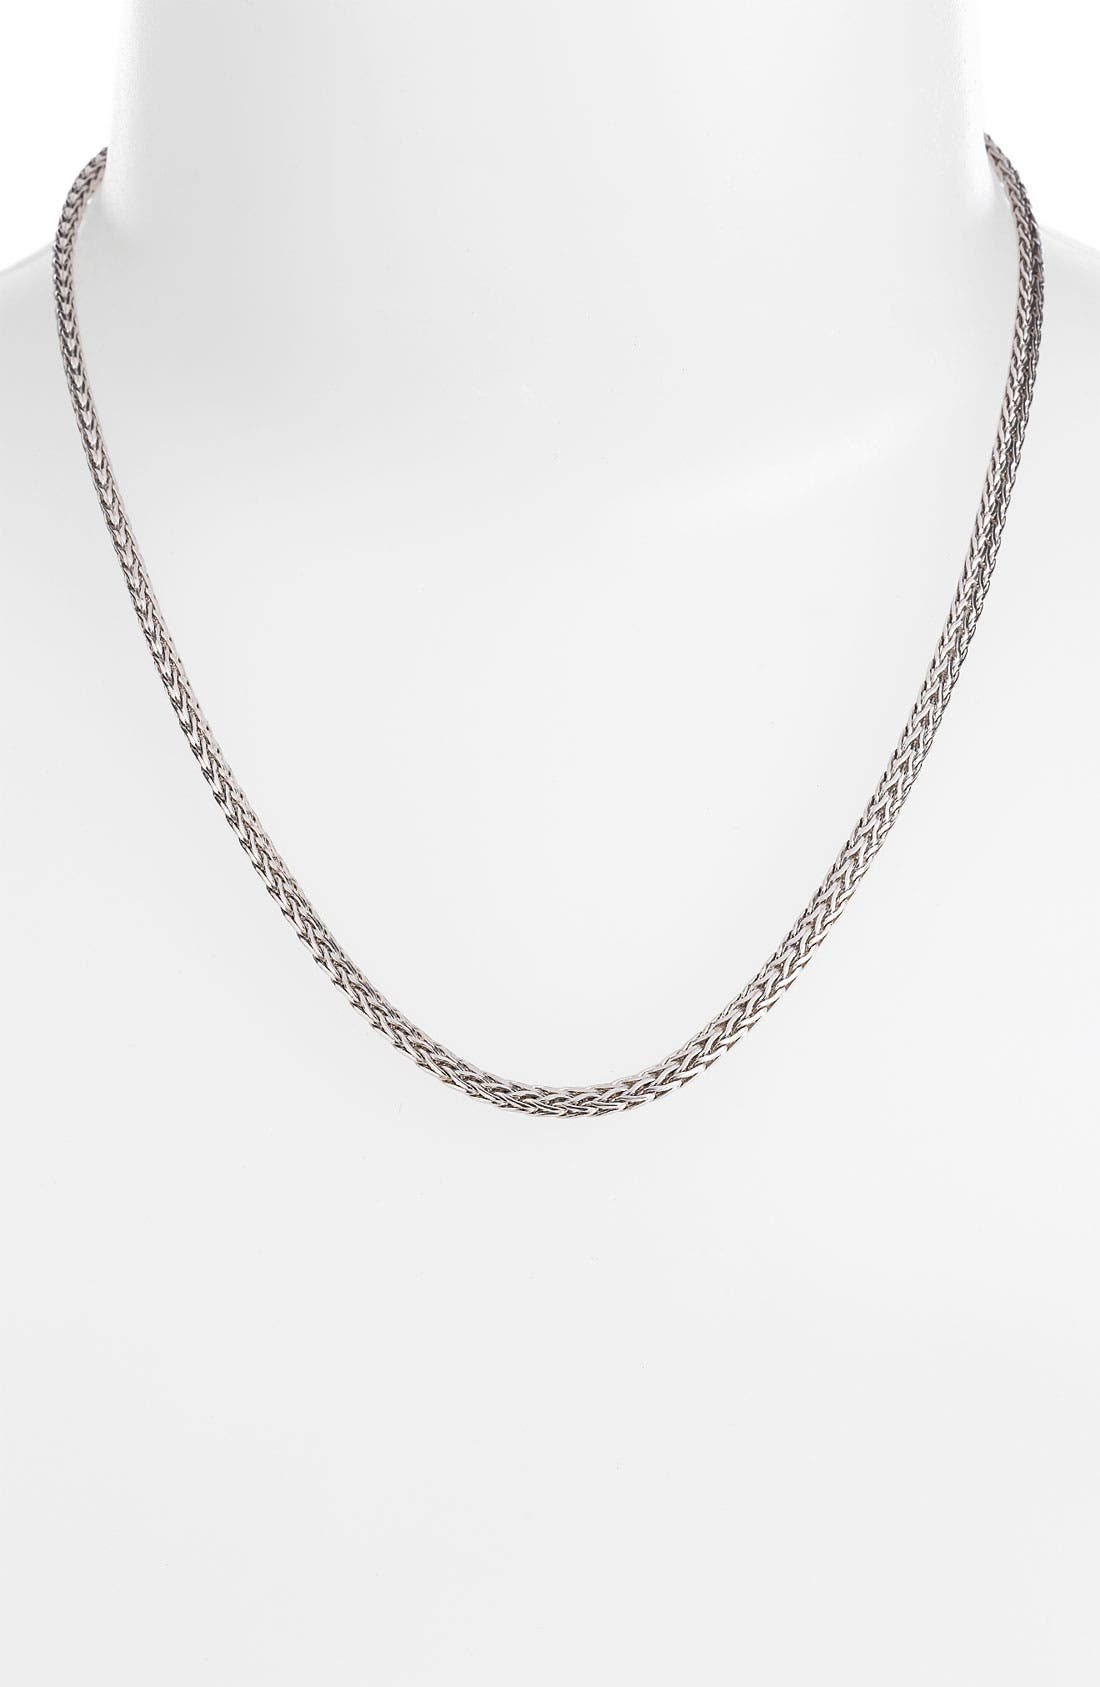 Alternate Image 1 Selected - John Hardy 'Classic Chain' Slim Necklace